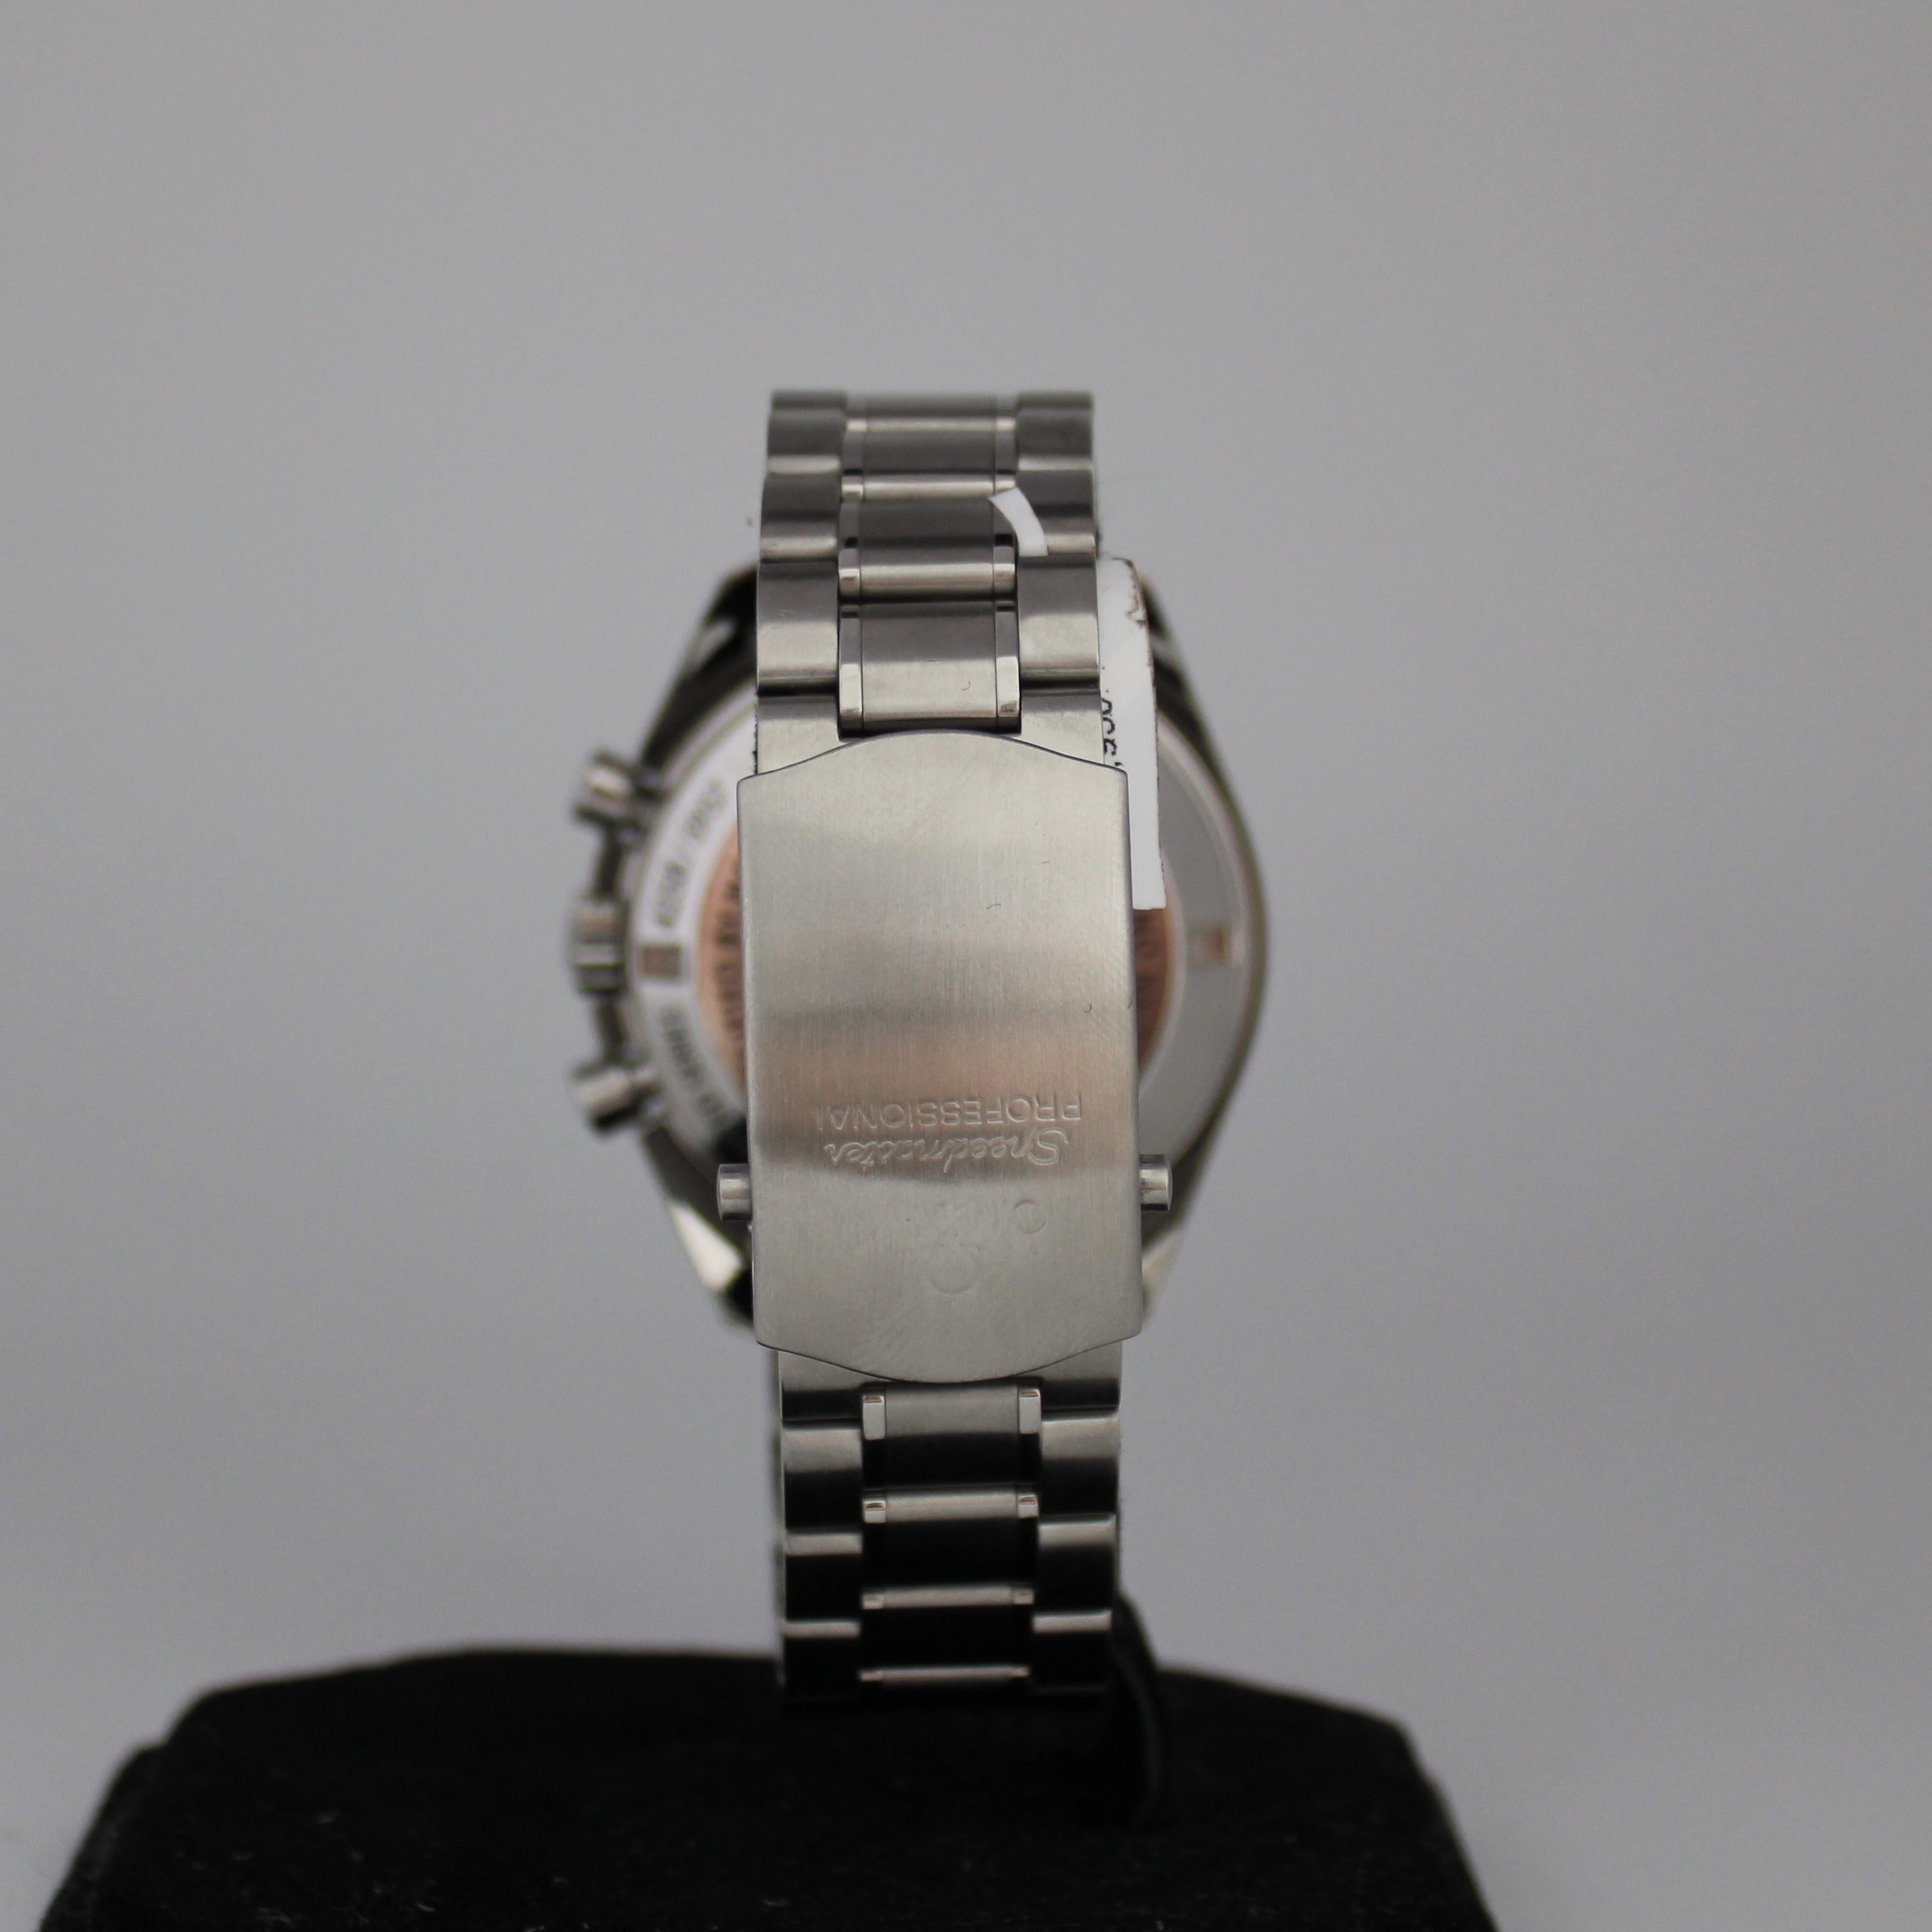 Omega Speedmaster Limted Series The First And Only Watch ref 311.30.42.30.01.001 - Image 4 of 5